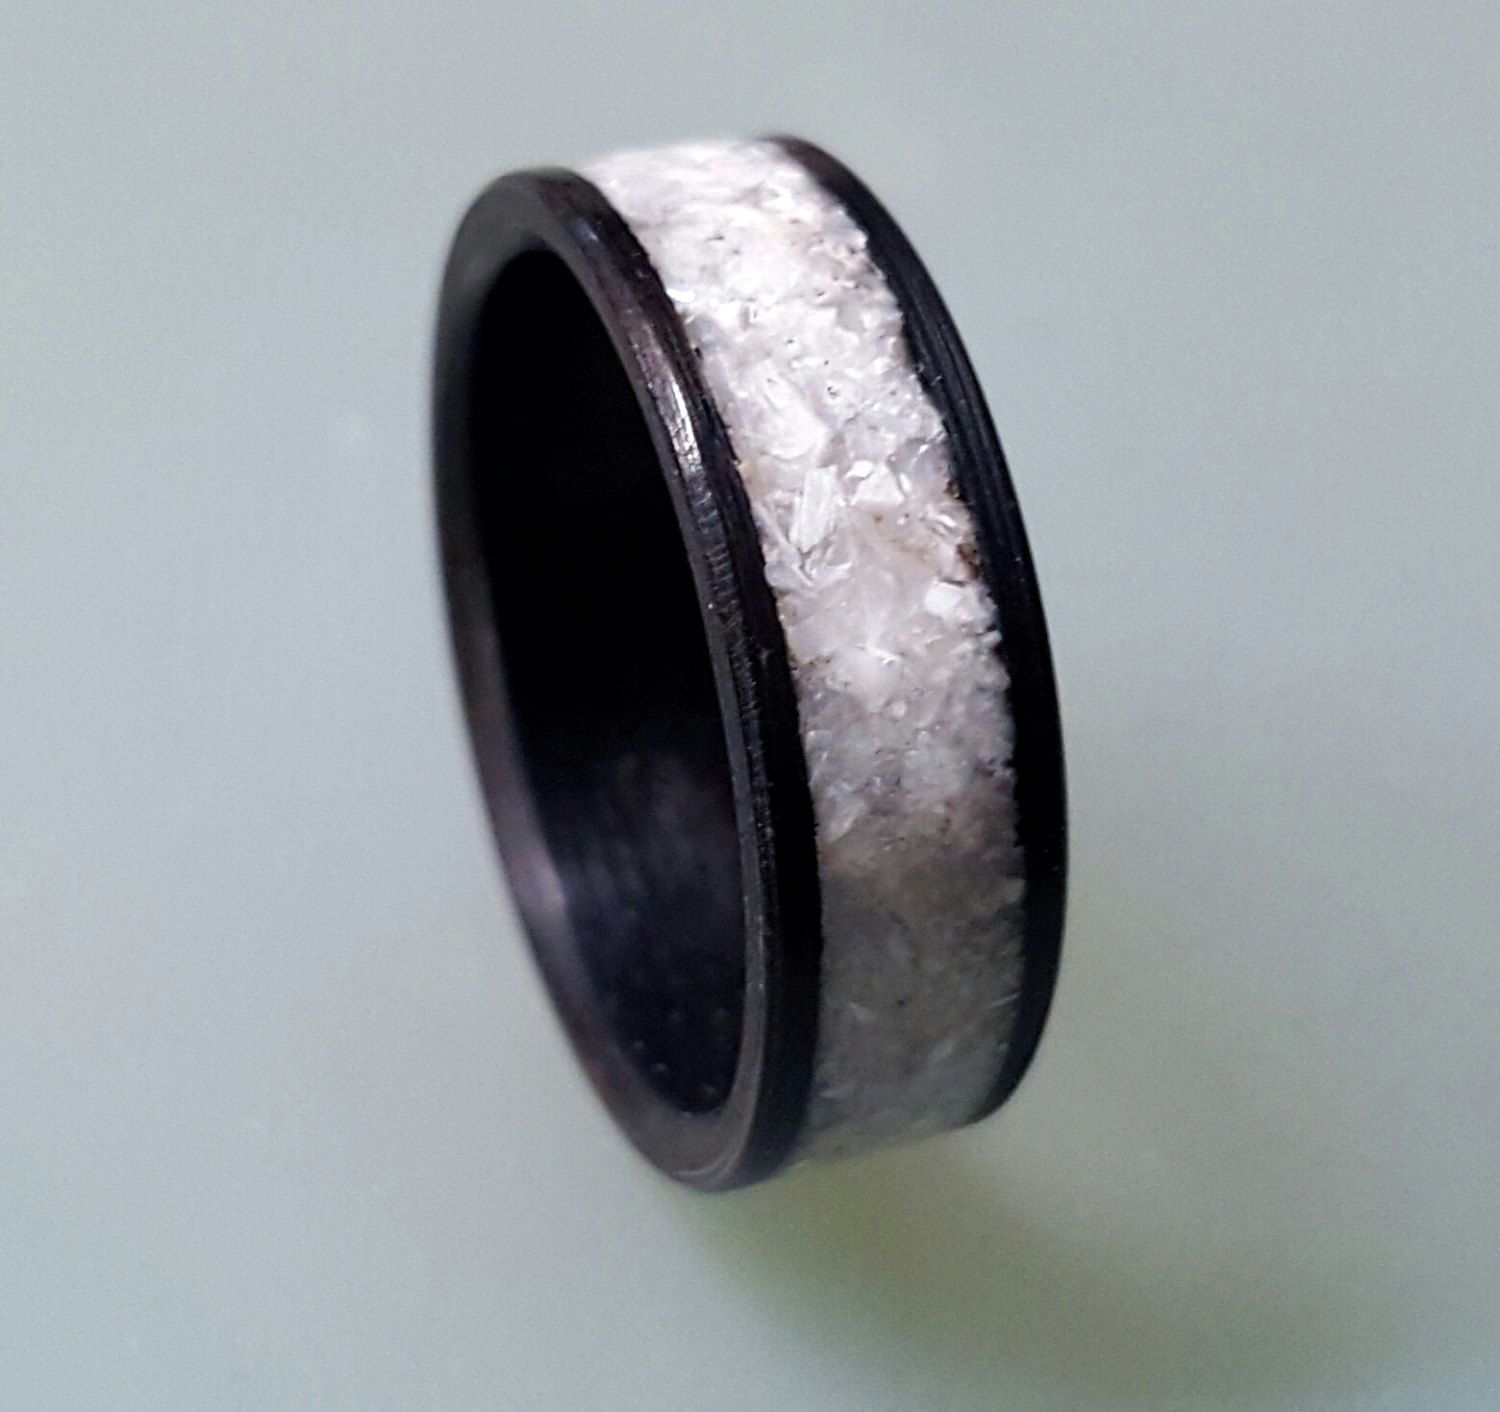 Women's ebony wood ring with crushed shell inlay (79.00 USD) by ringordering